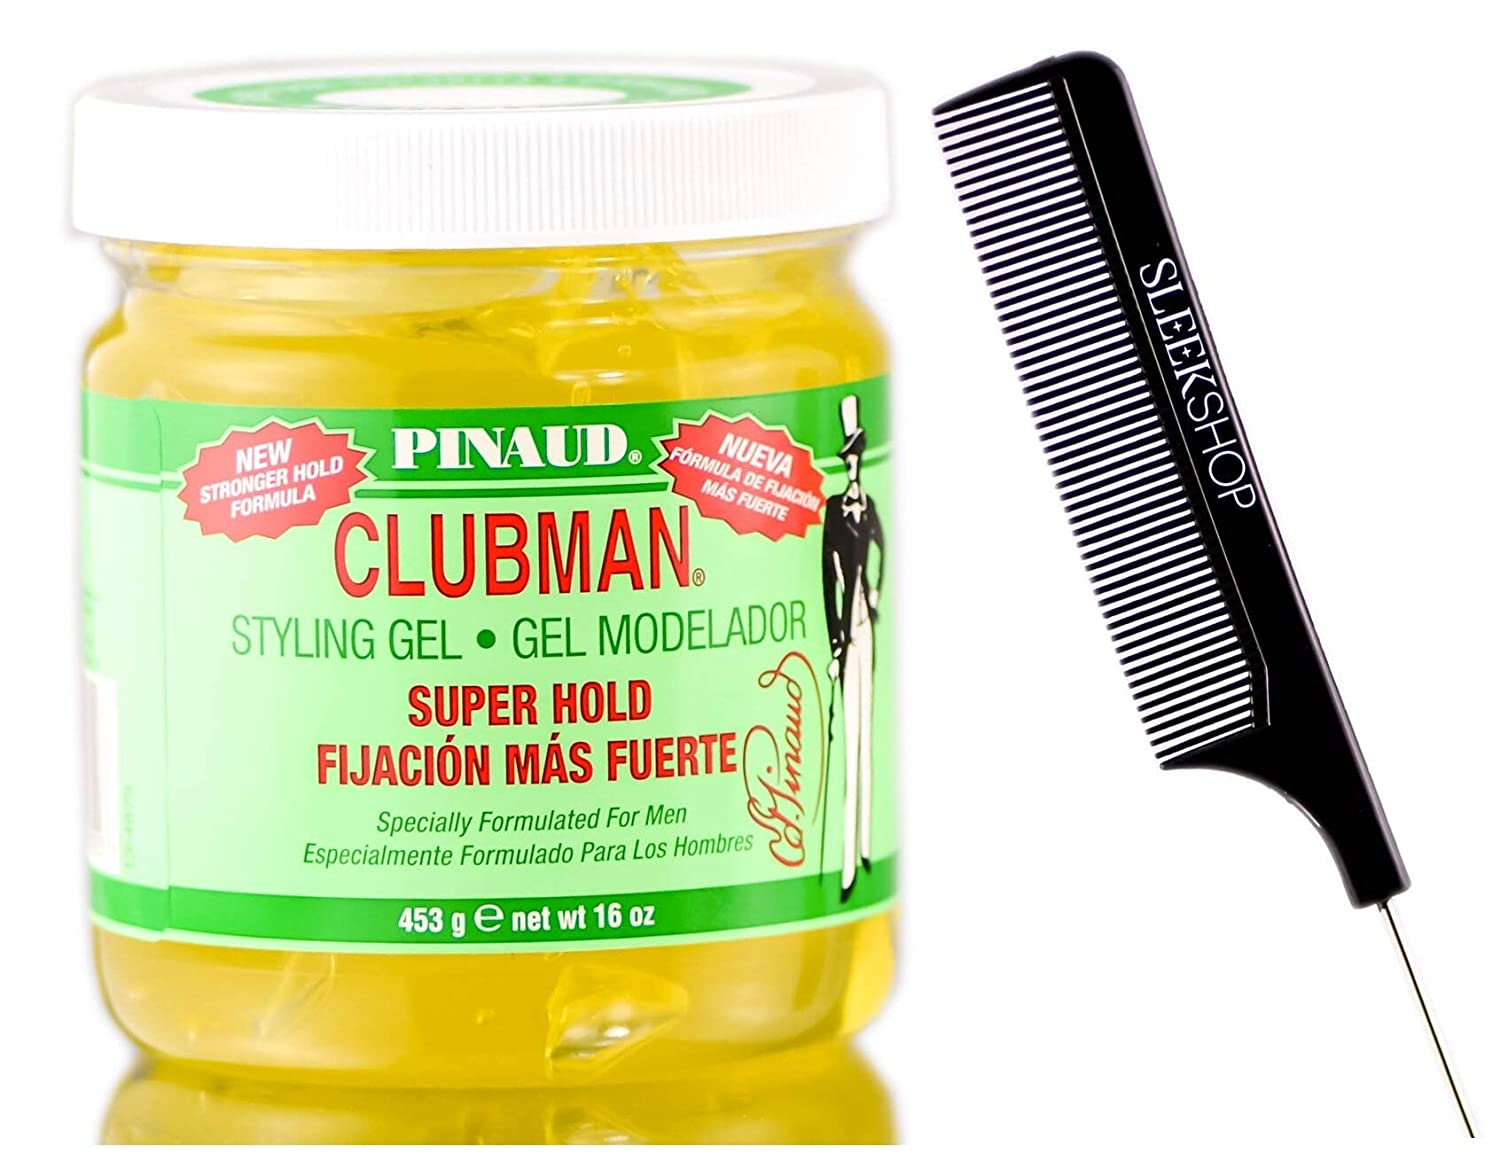 Pinaud Clubman Since 1810 Super special price STYLING GEL Sleek for Quality inspection No MEN Comb w